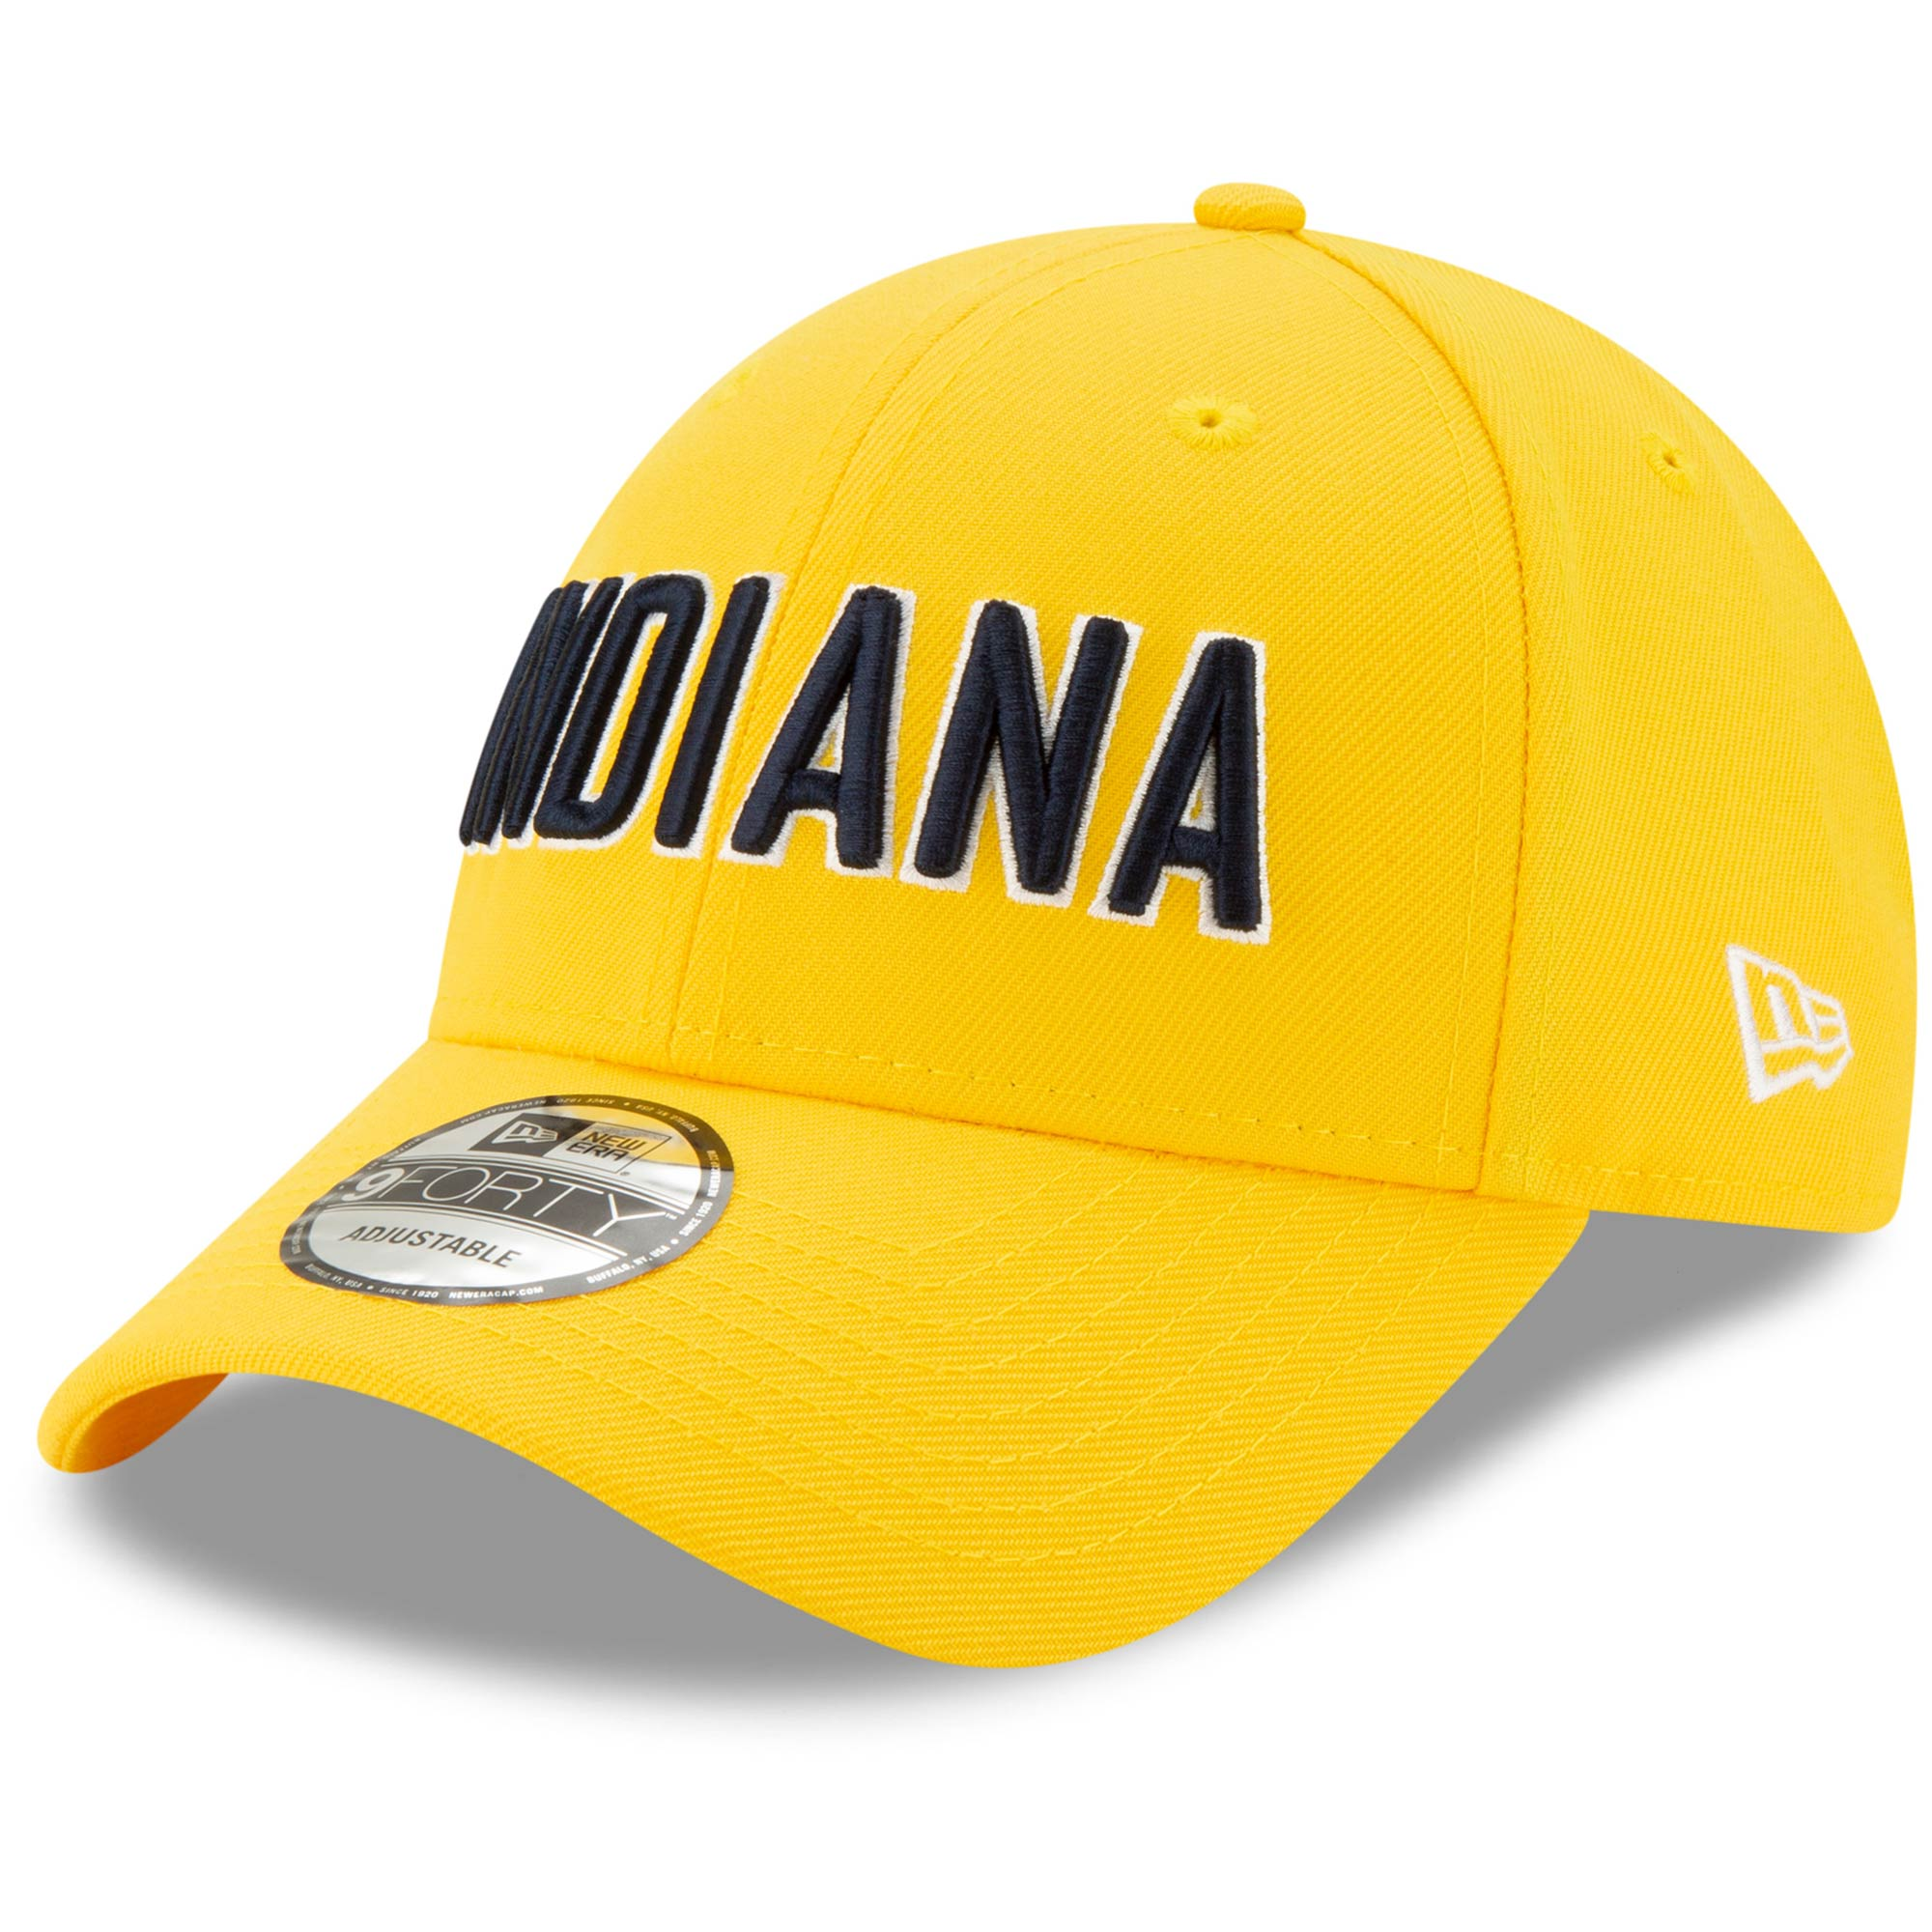 Indiana Pacers New Era Team Statement Edition 9FORTY Adjustable Hat - Gold